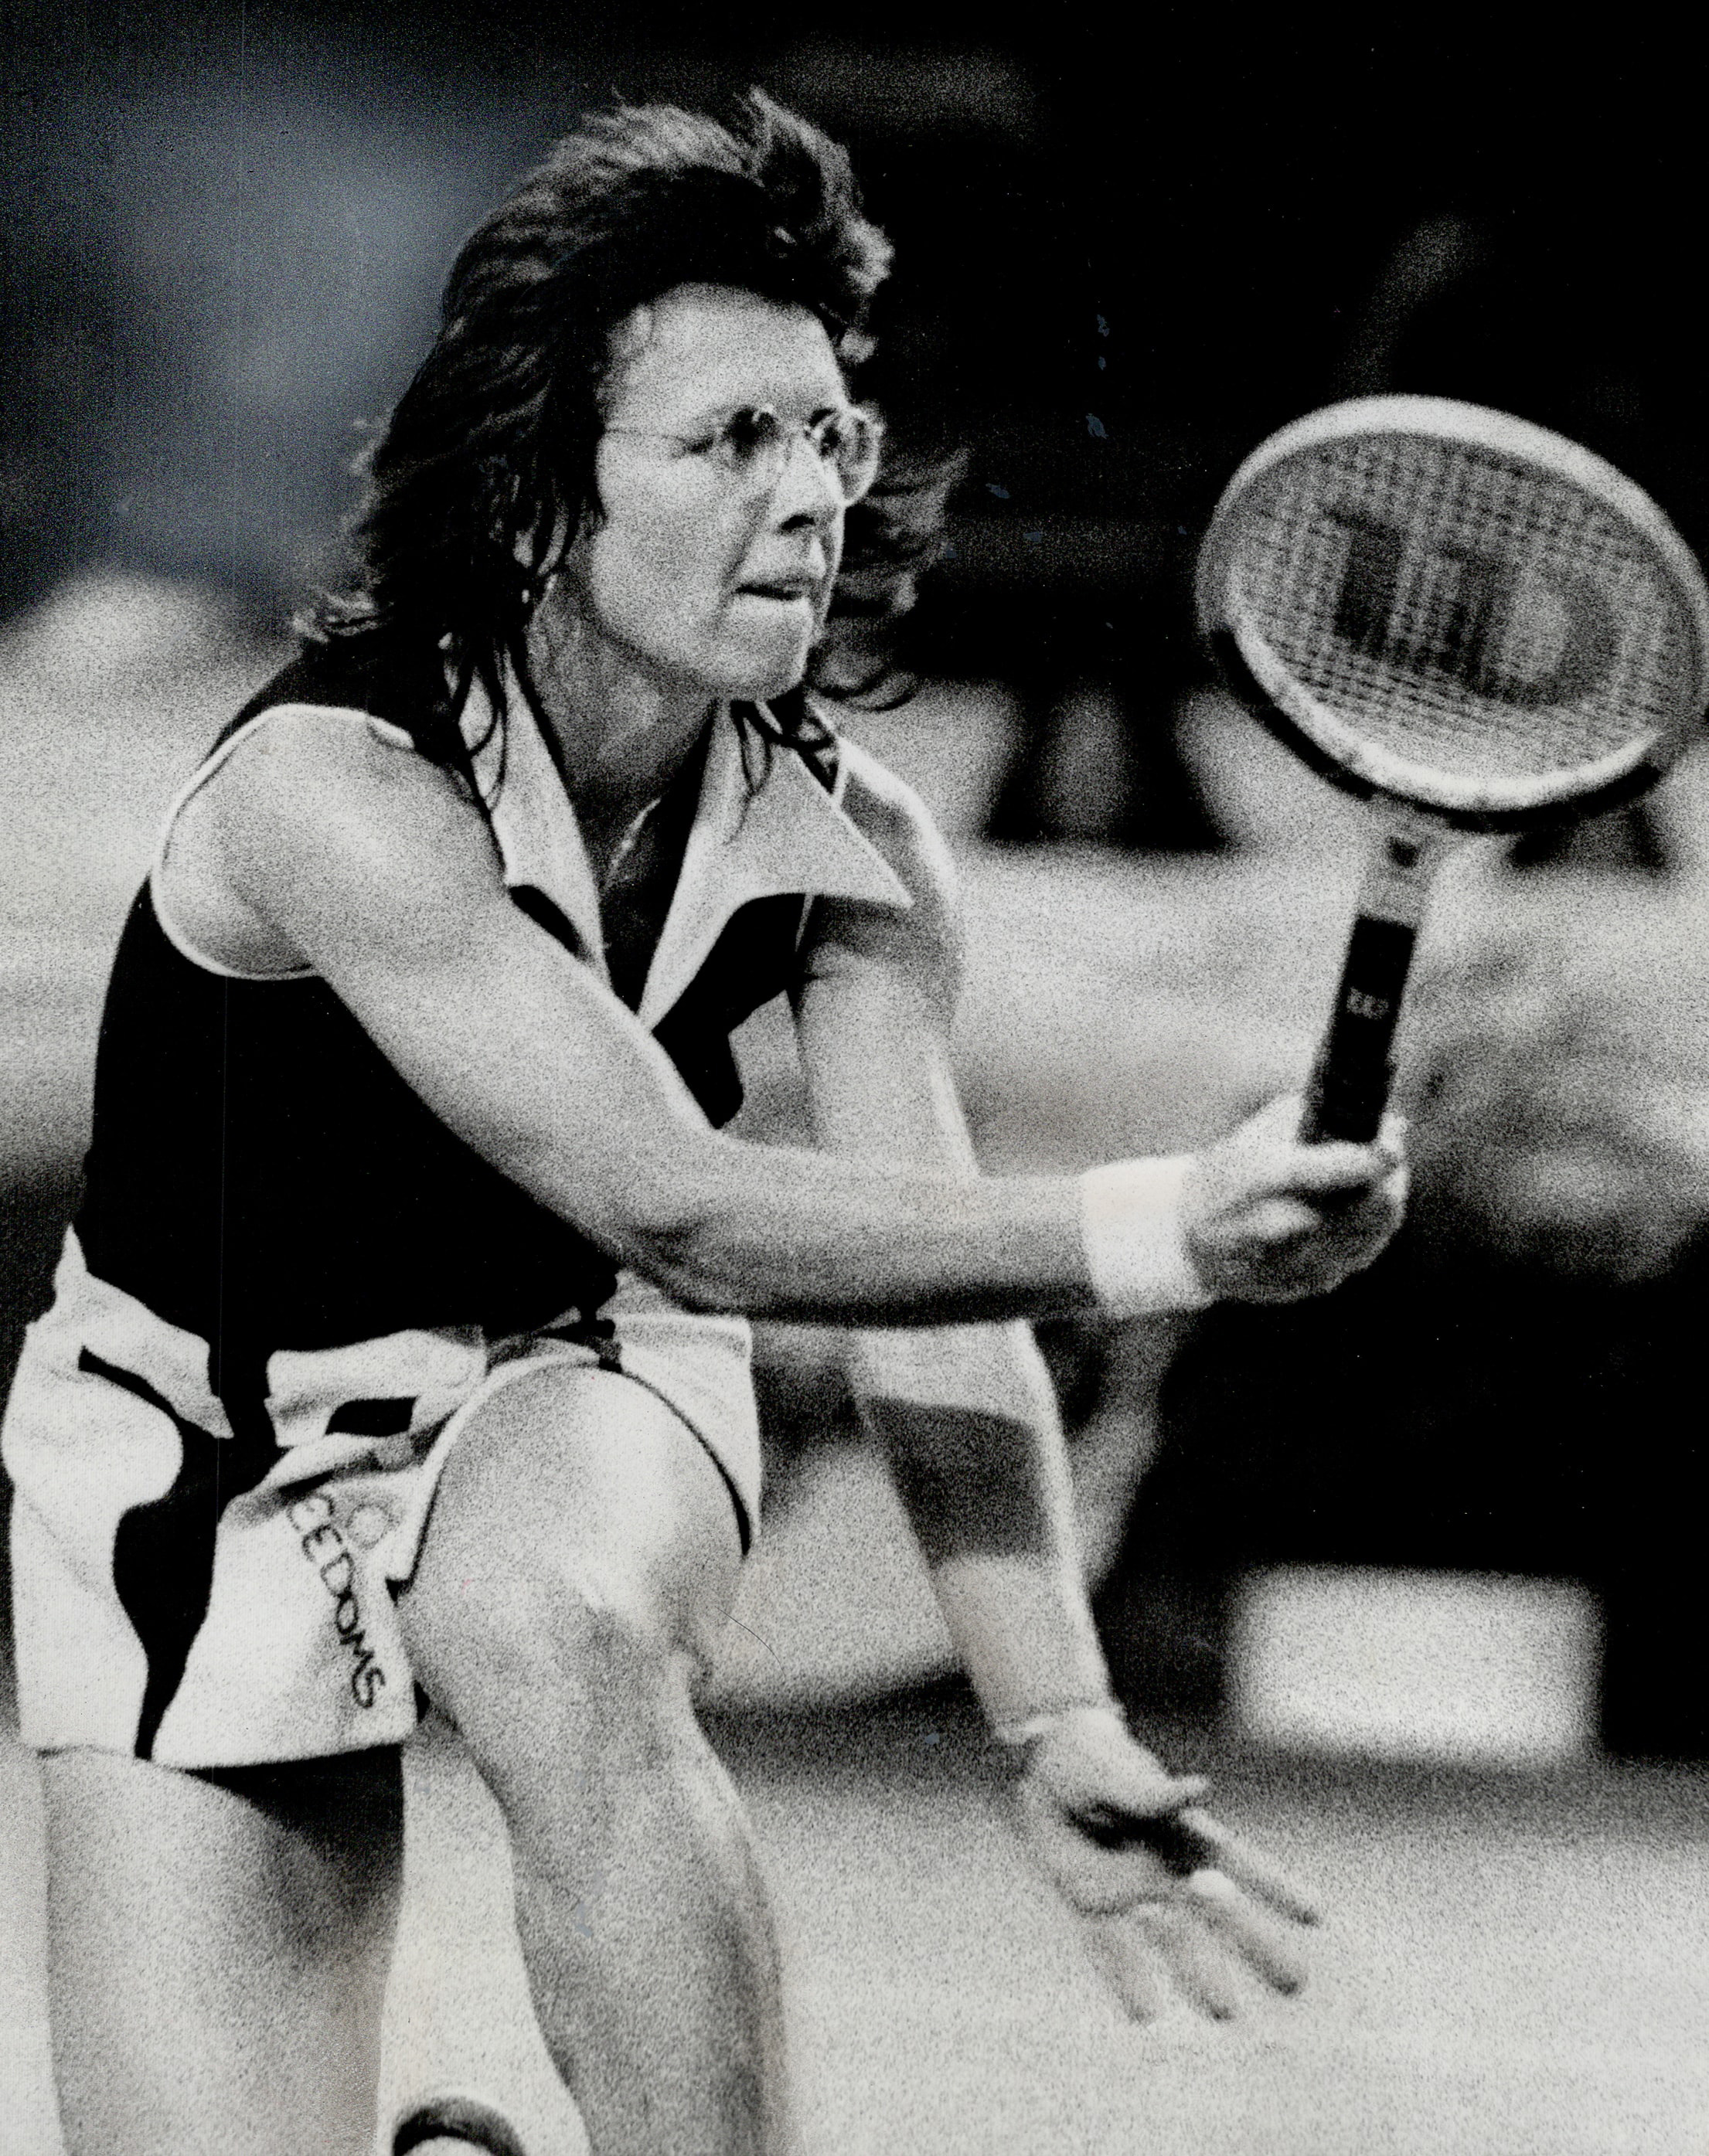 La tenista Billy Jean King ganó 12 Grand Slam